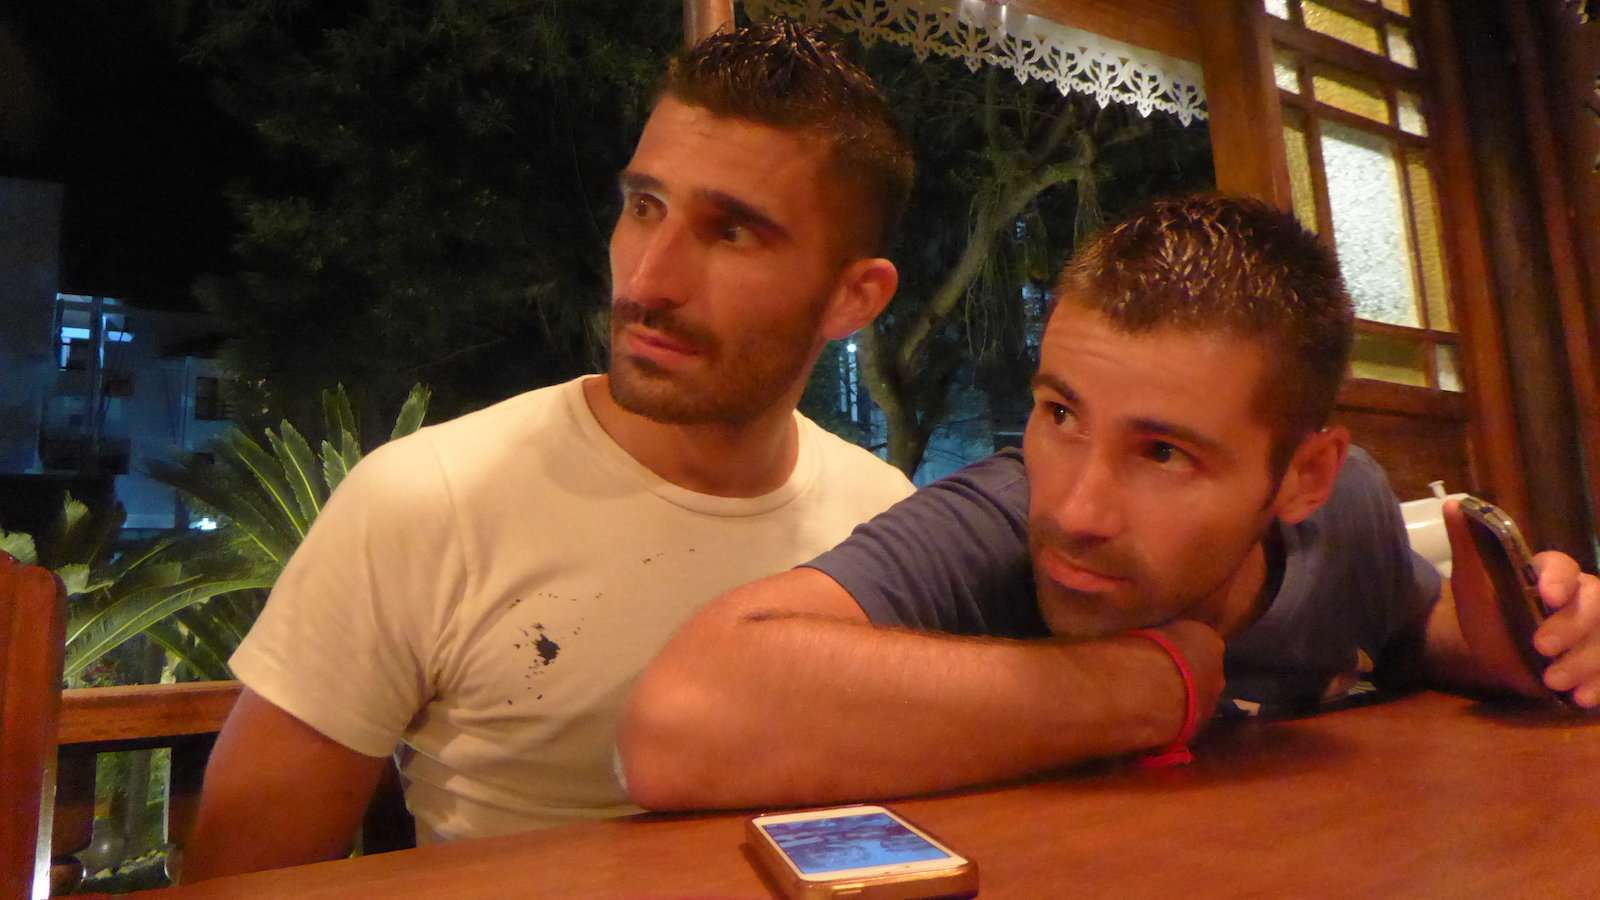 Most popular gay dating app in europe